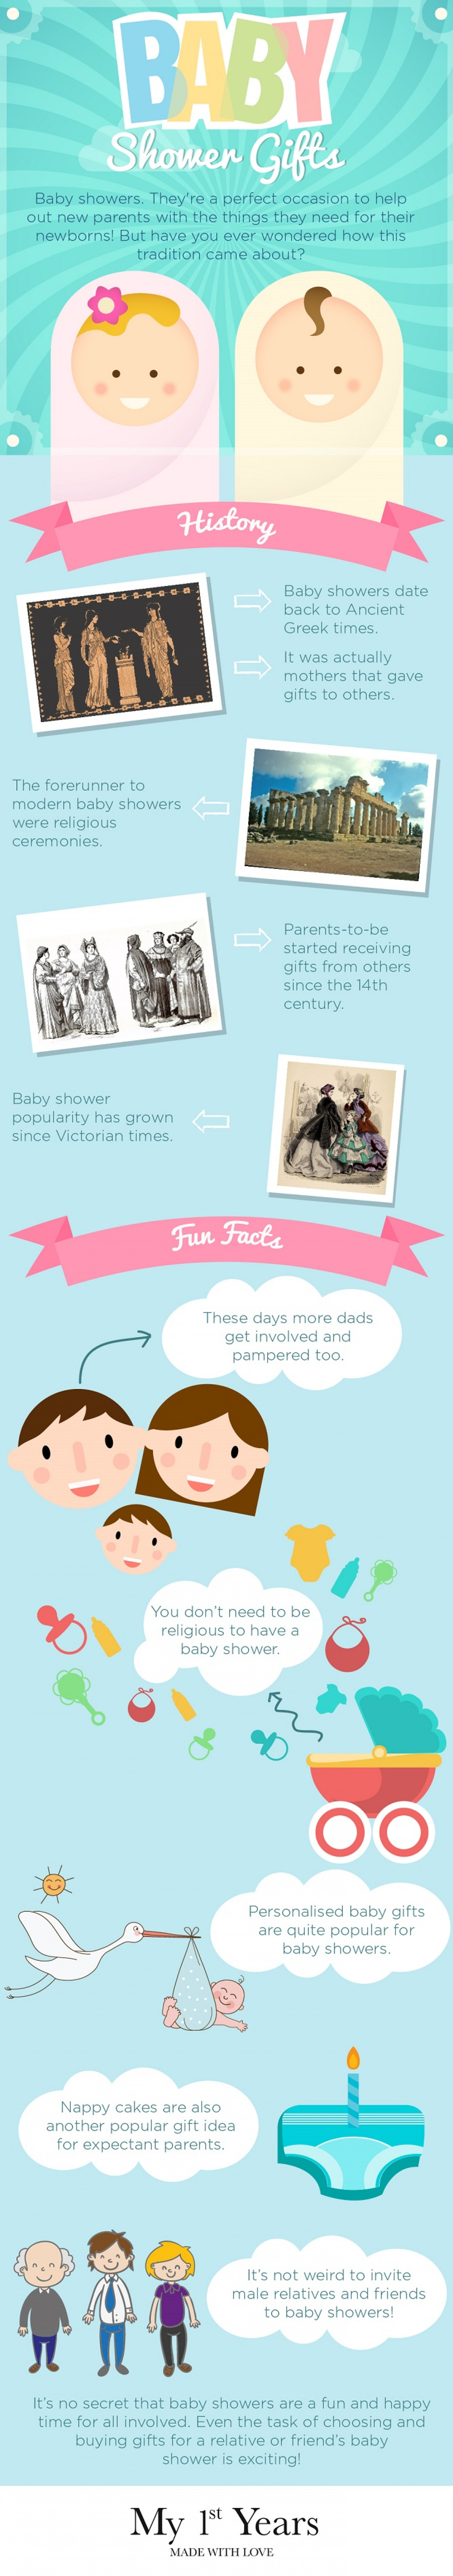 Baby Shower Gifts Infographic